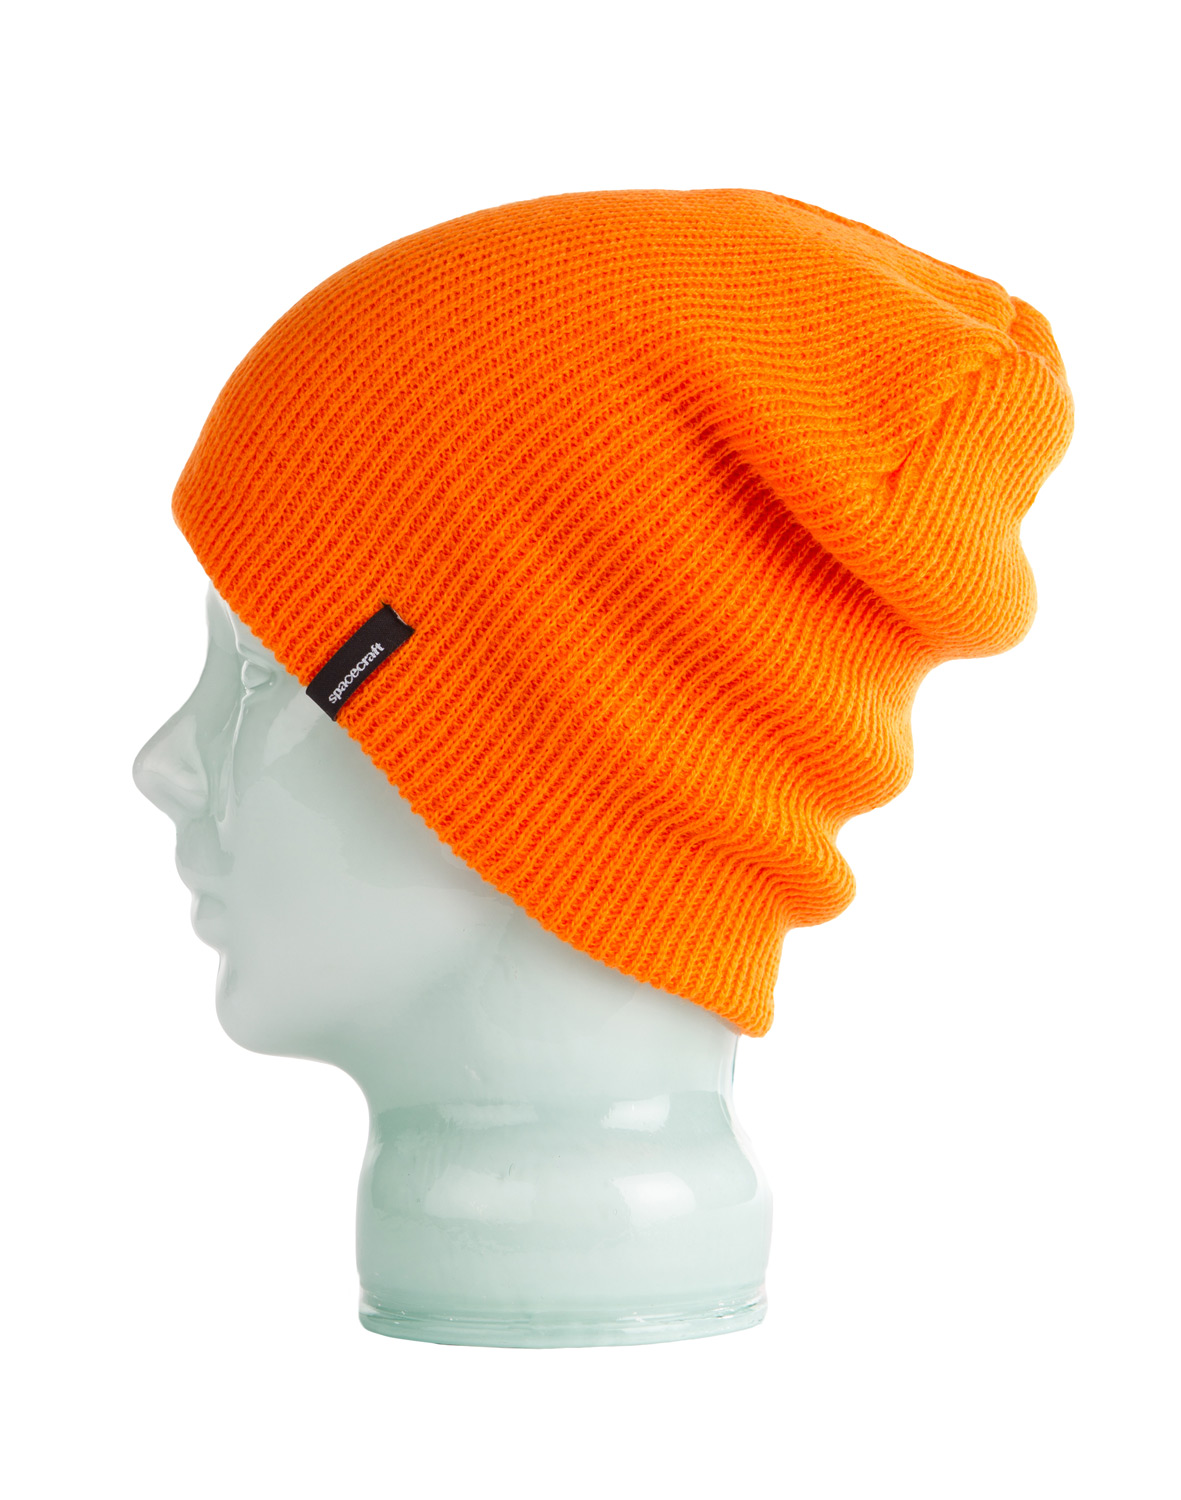 Key Features of the Spacecraft Offender Beanie: Slouchy Fit Light weight Finely knit beanie with double layer construction Can also be worn with a folded cuff Material: Fine Knit Acrylic - $17.95